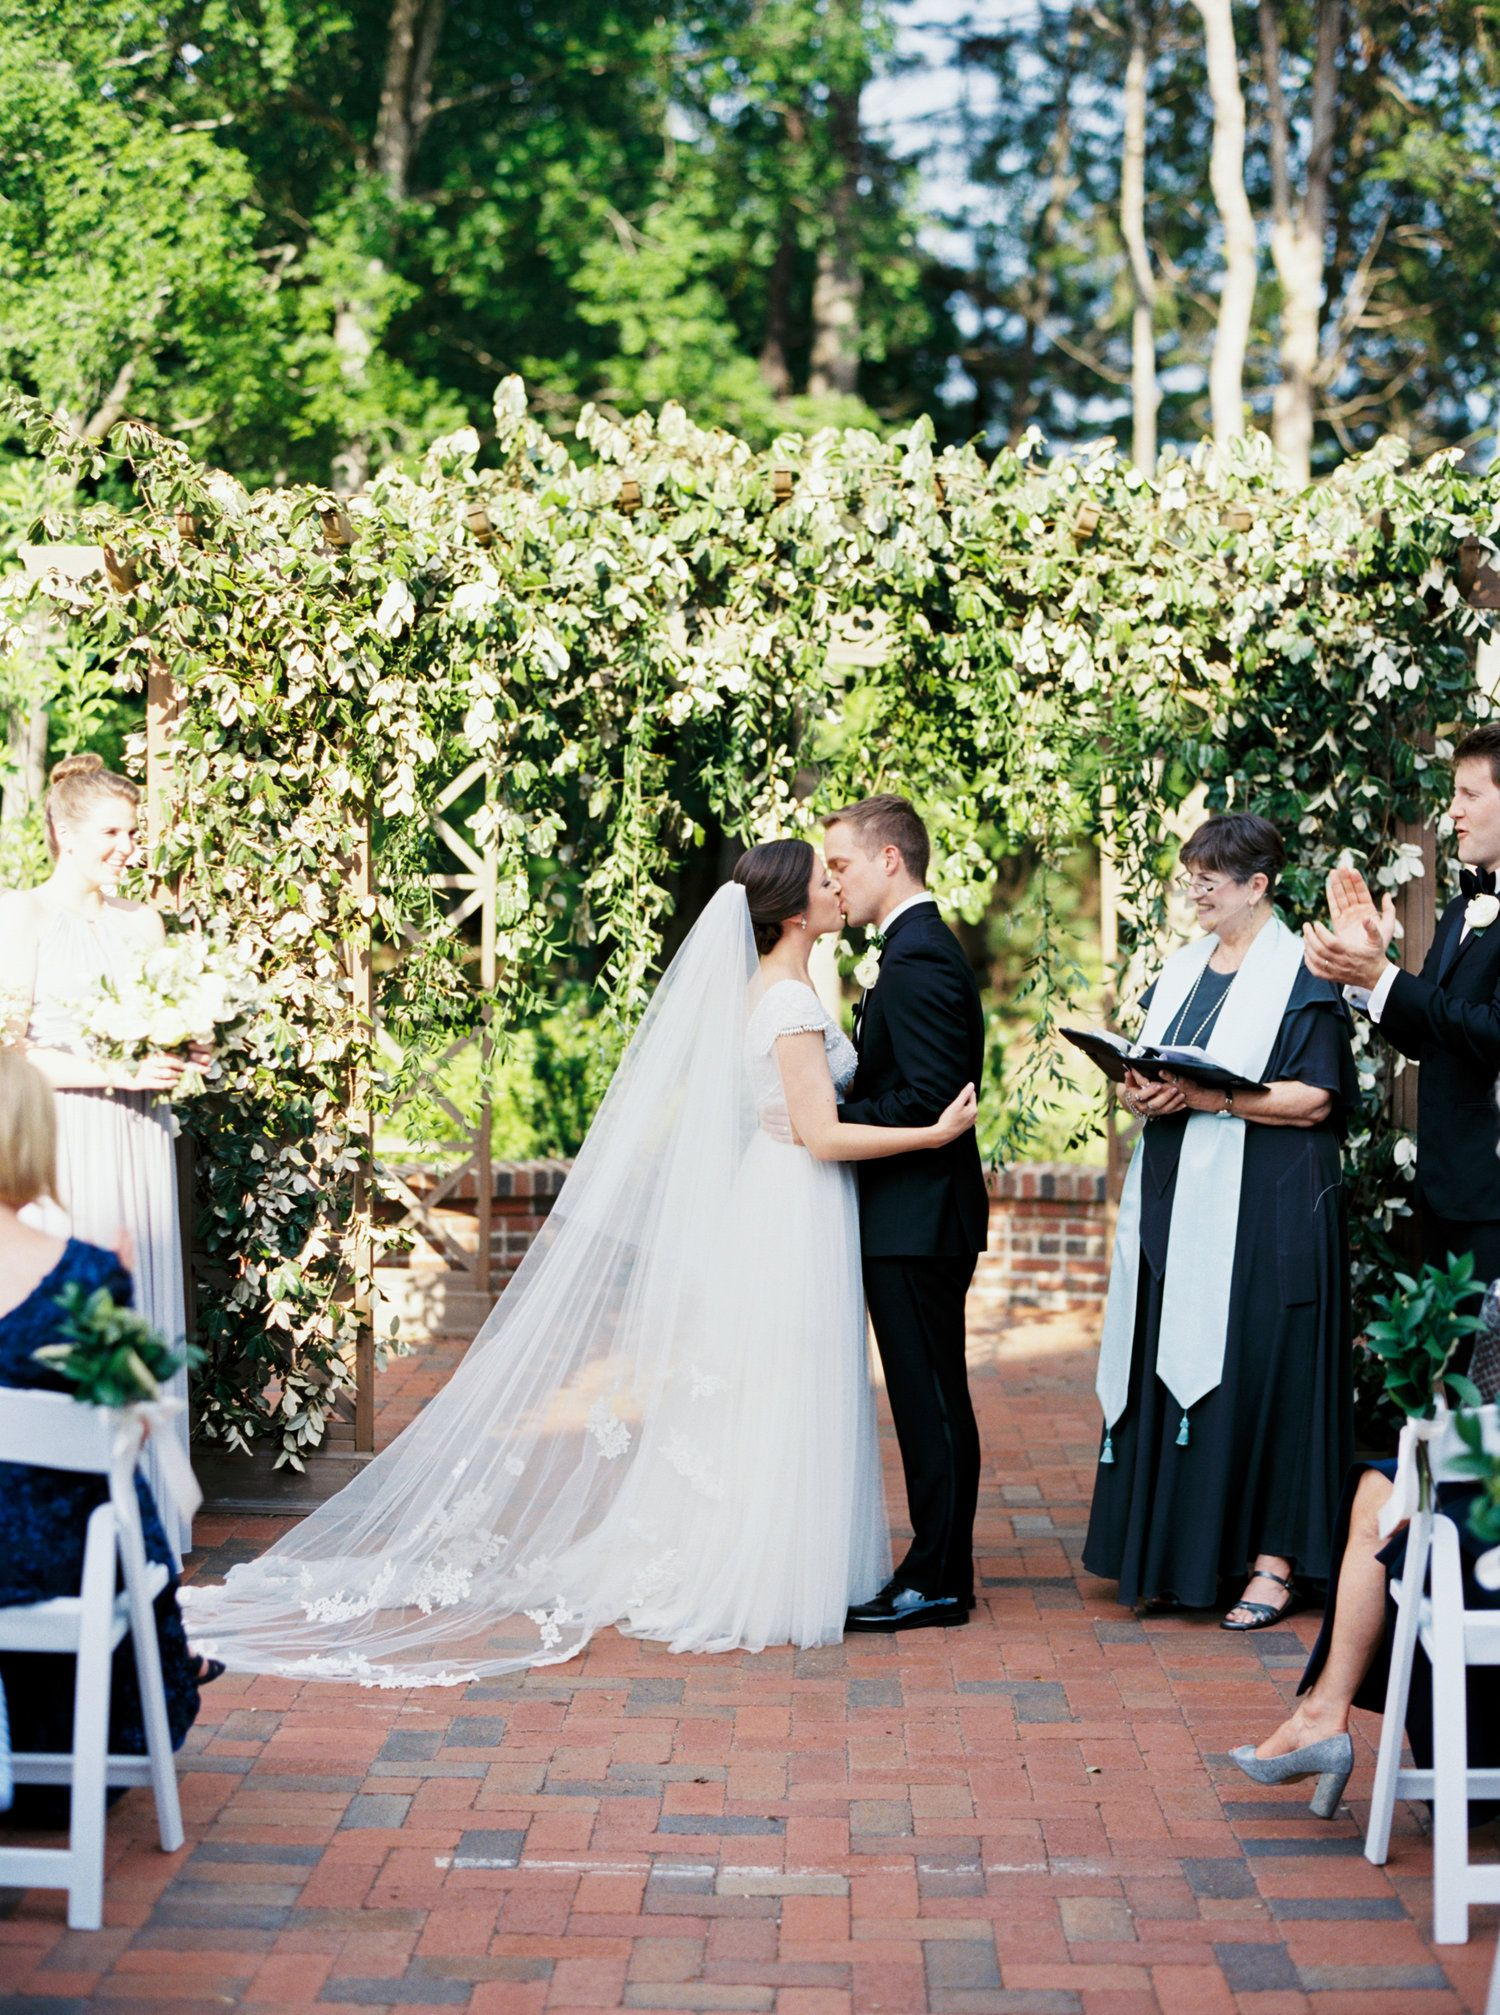 Discovering your wedding style with images wedding